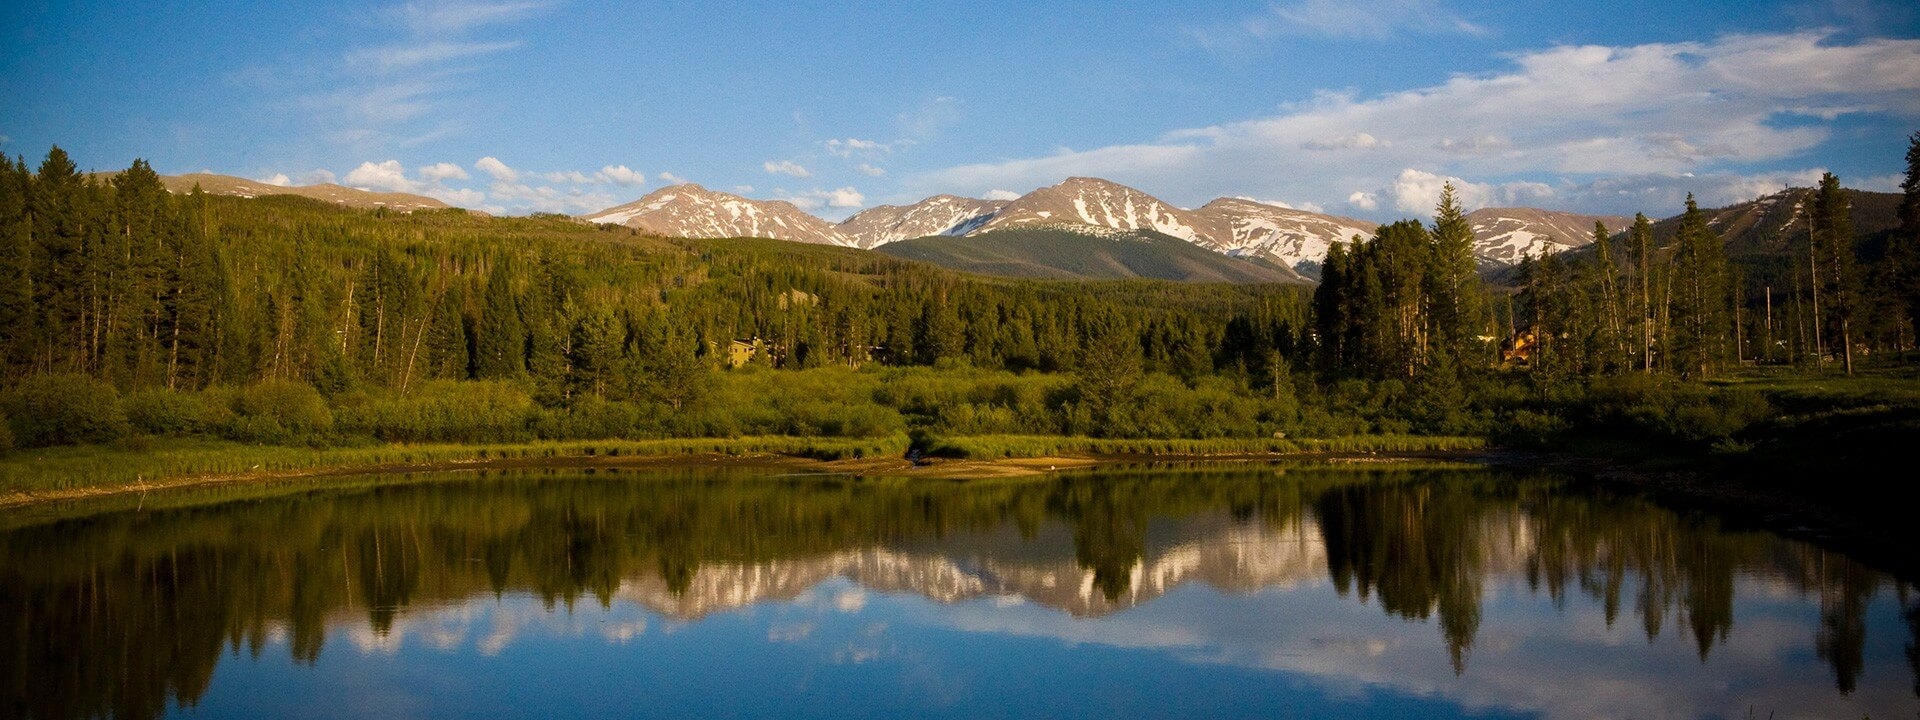 Top 5 Off-the-Beaten Path Attractions in Grand County, Colorado